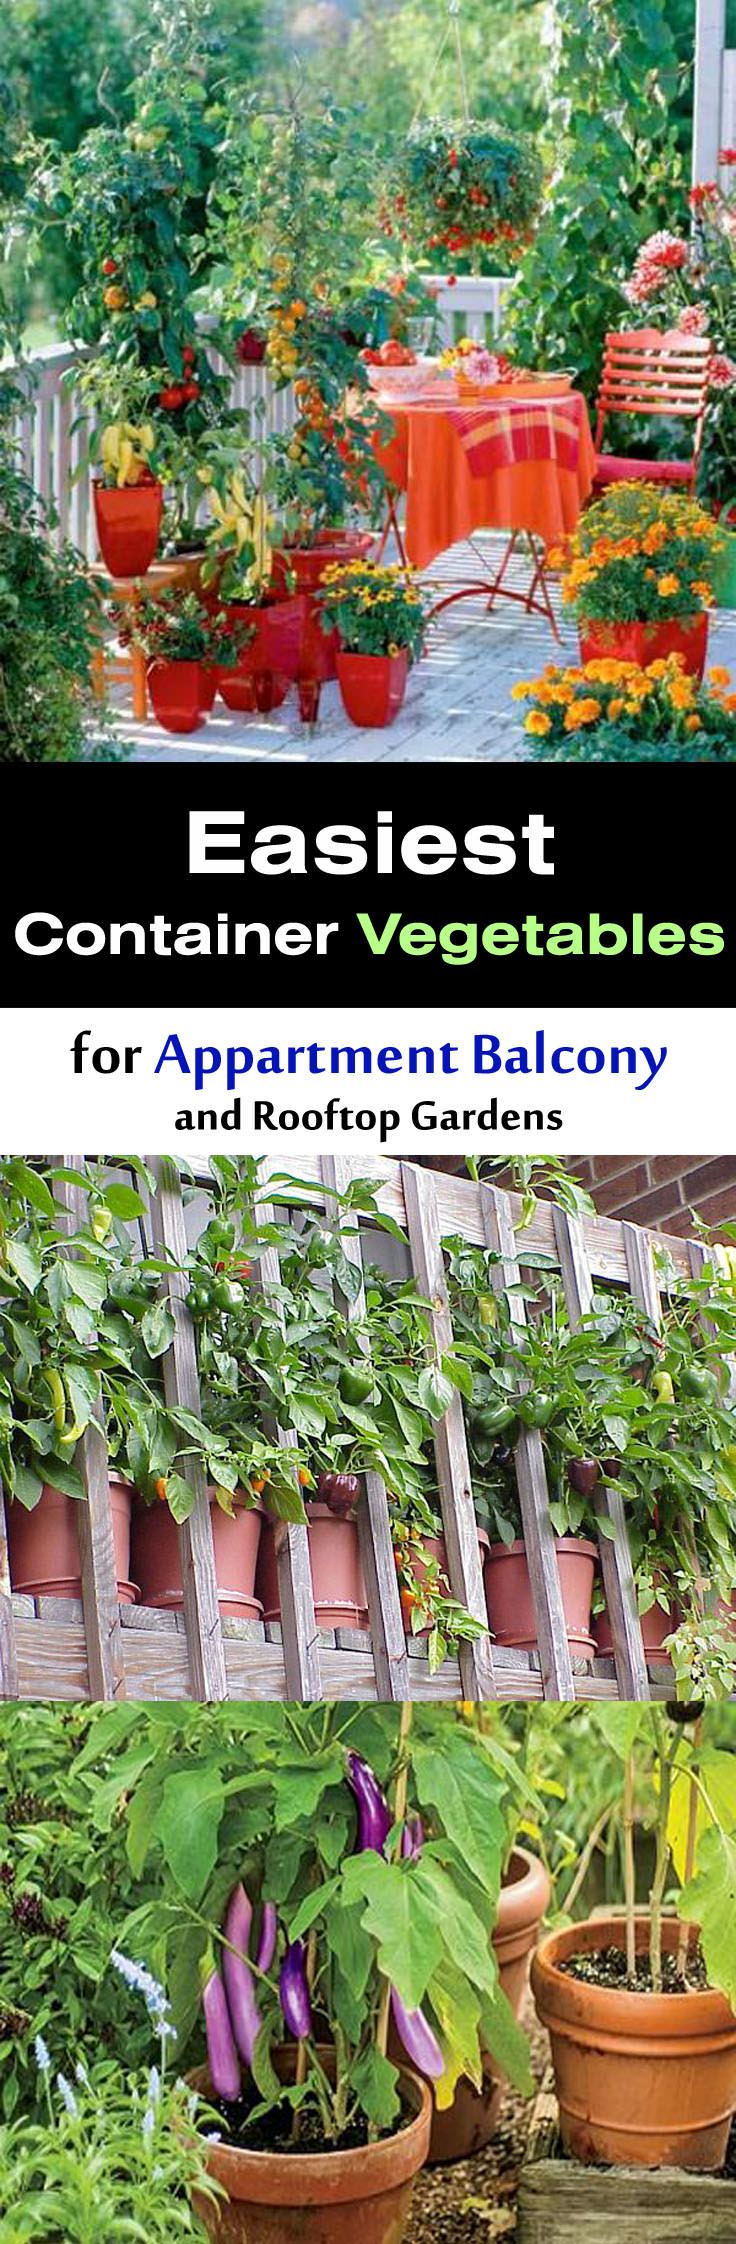 Rooftop Kitchen Garden Easy Container Vegetables For Balcony Rooftop Garden Container